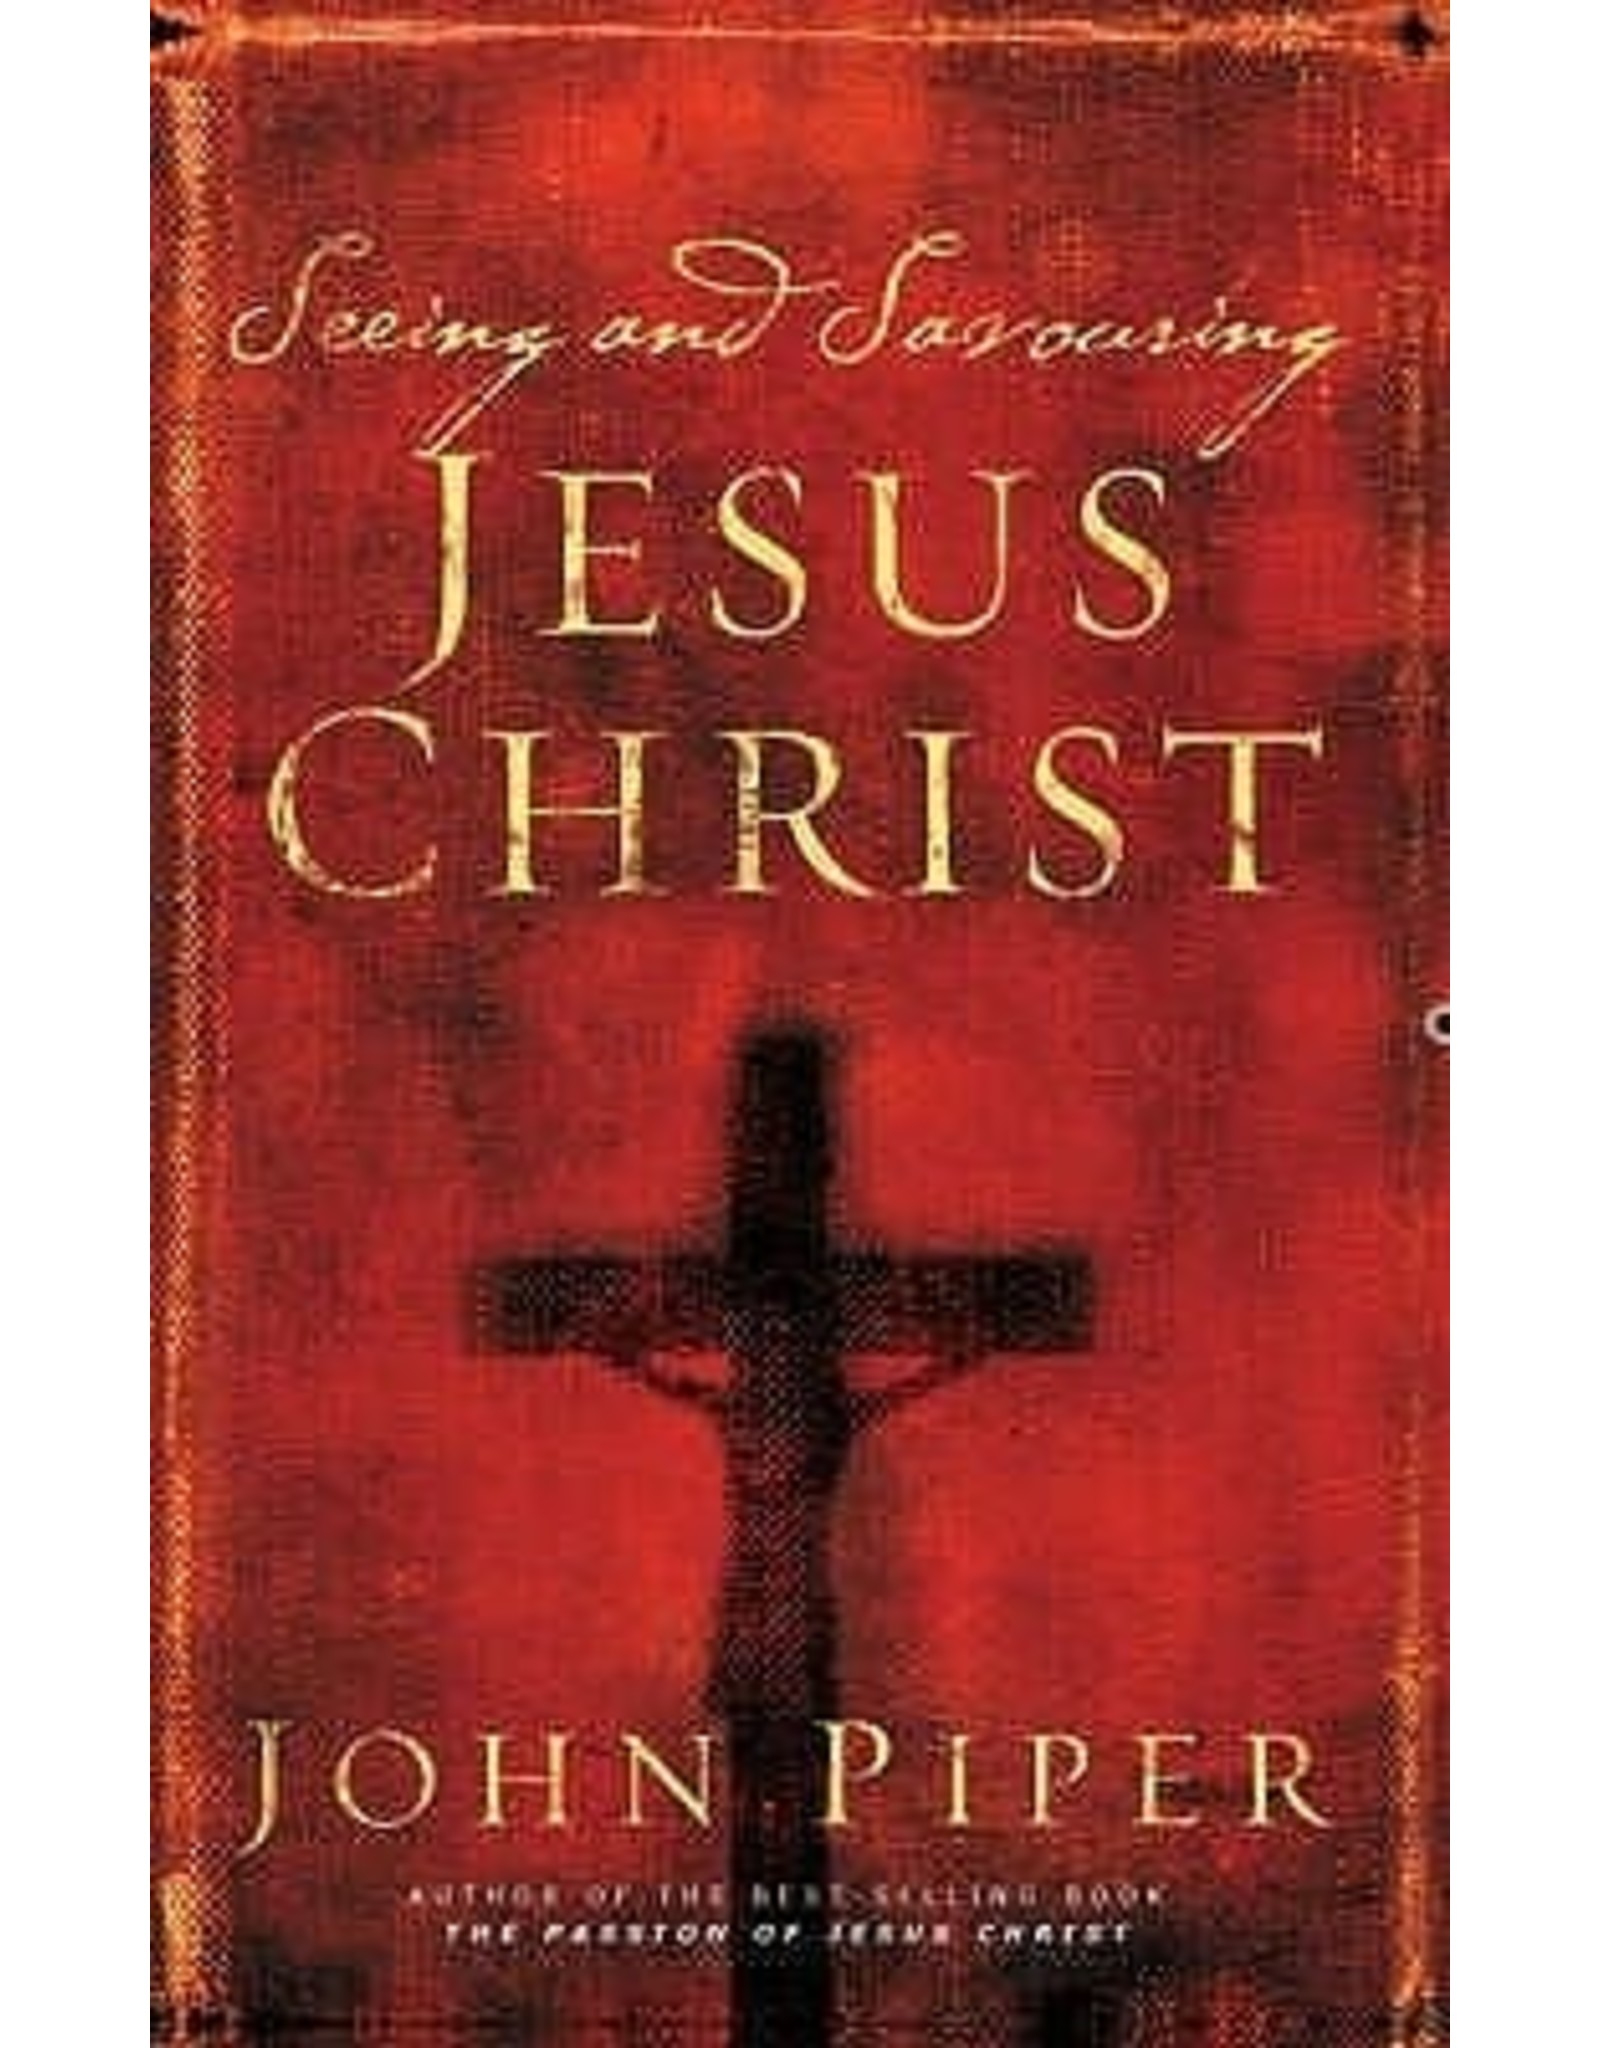 Piper Seeing and Savouring Jesus Christ